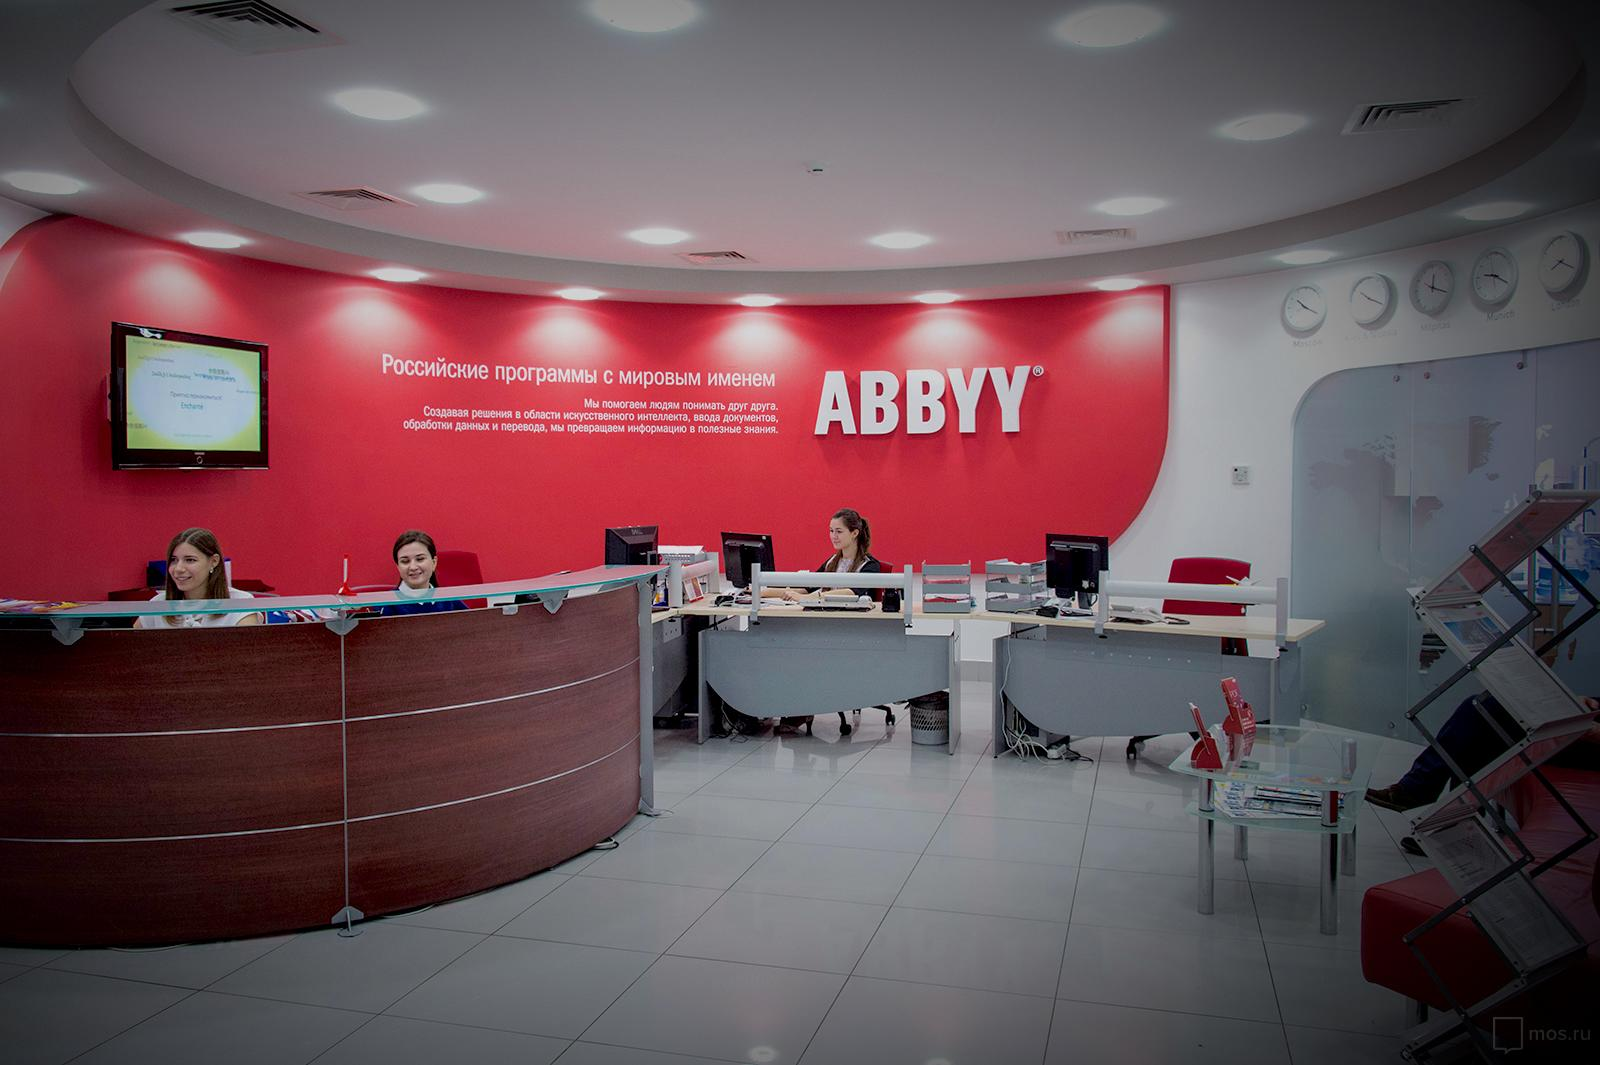 Abbyy leaked 203,000 sensitive customer documents in server lapse